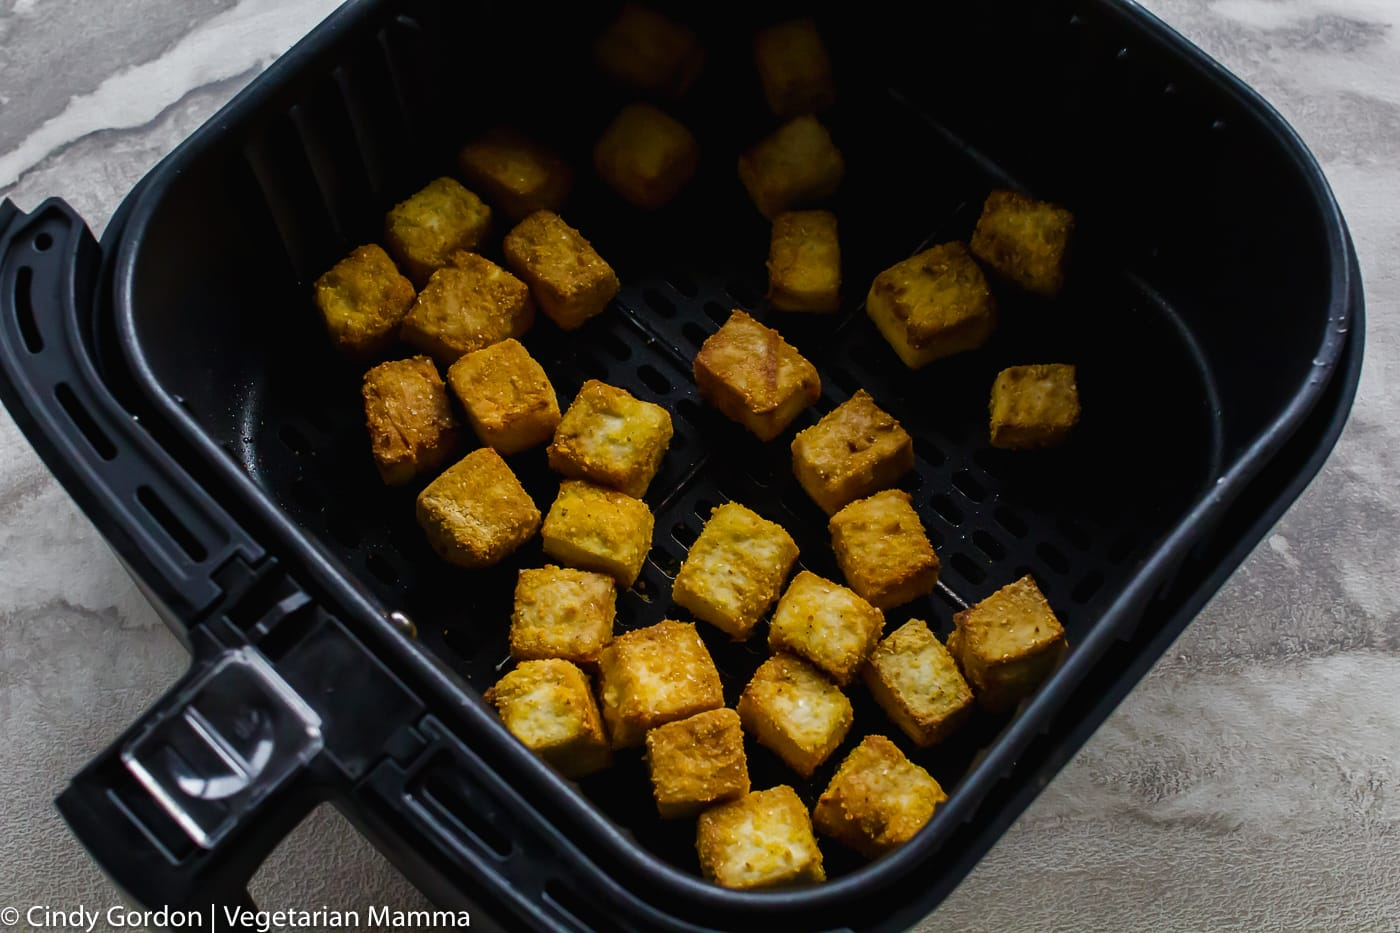 crispy tofu pictured in air fryer basket